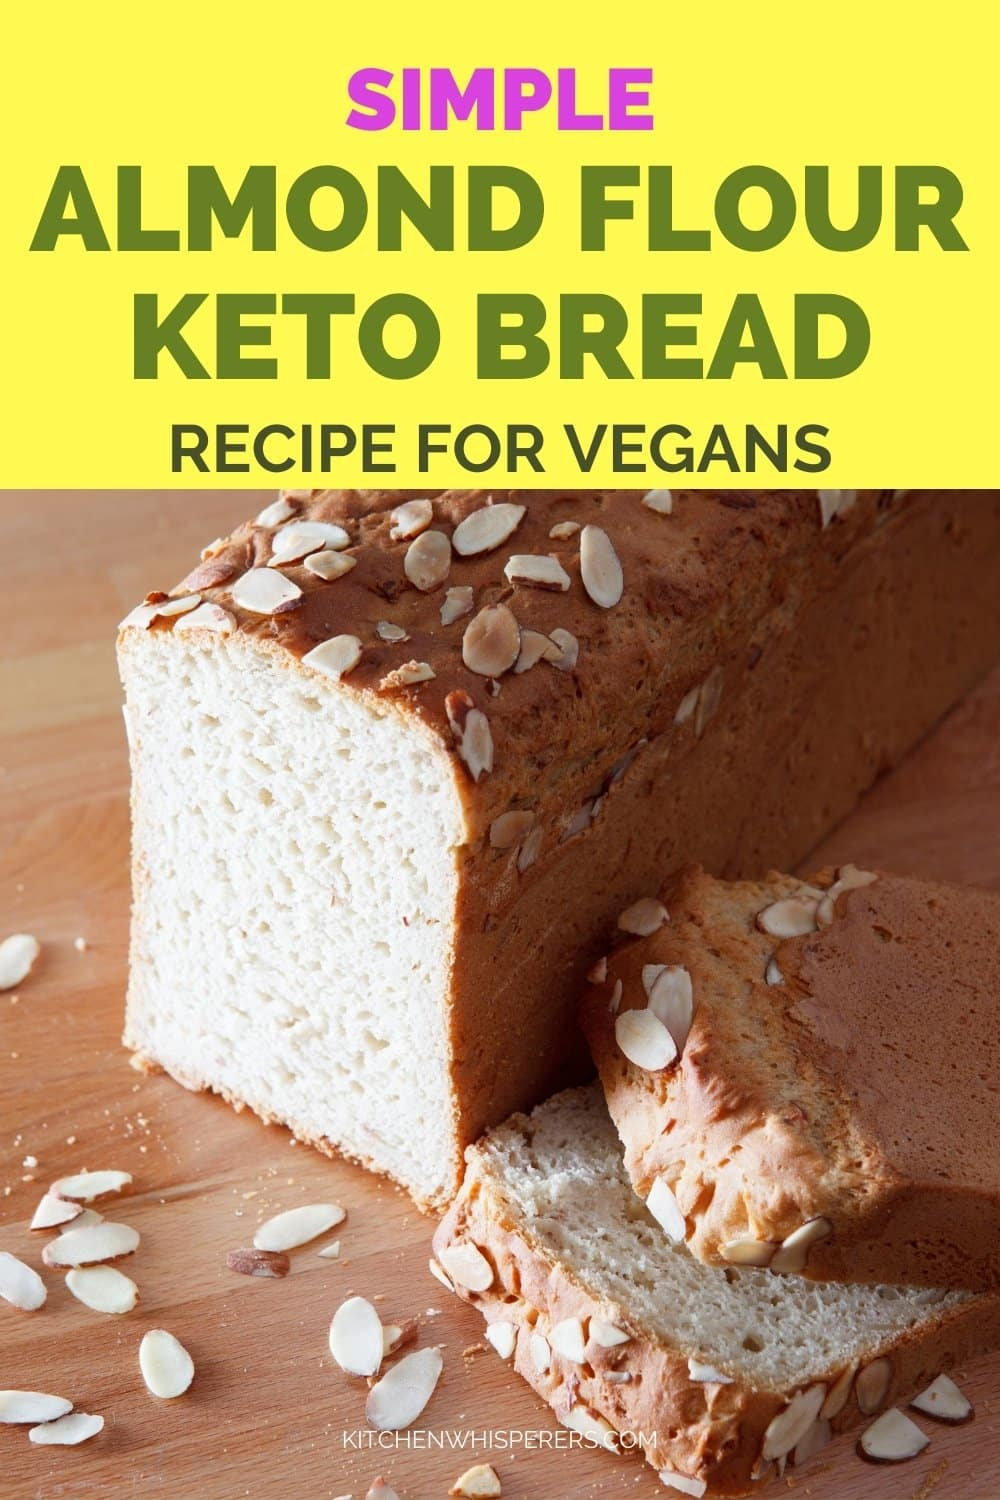 Simple Vegan Almond Flour Keto Bread Recipe